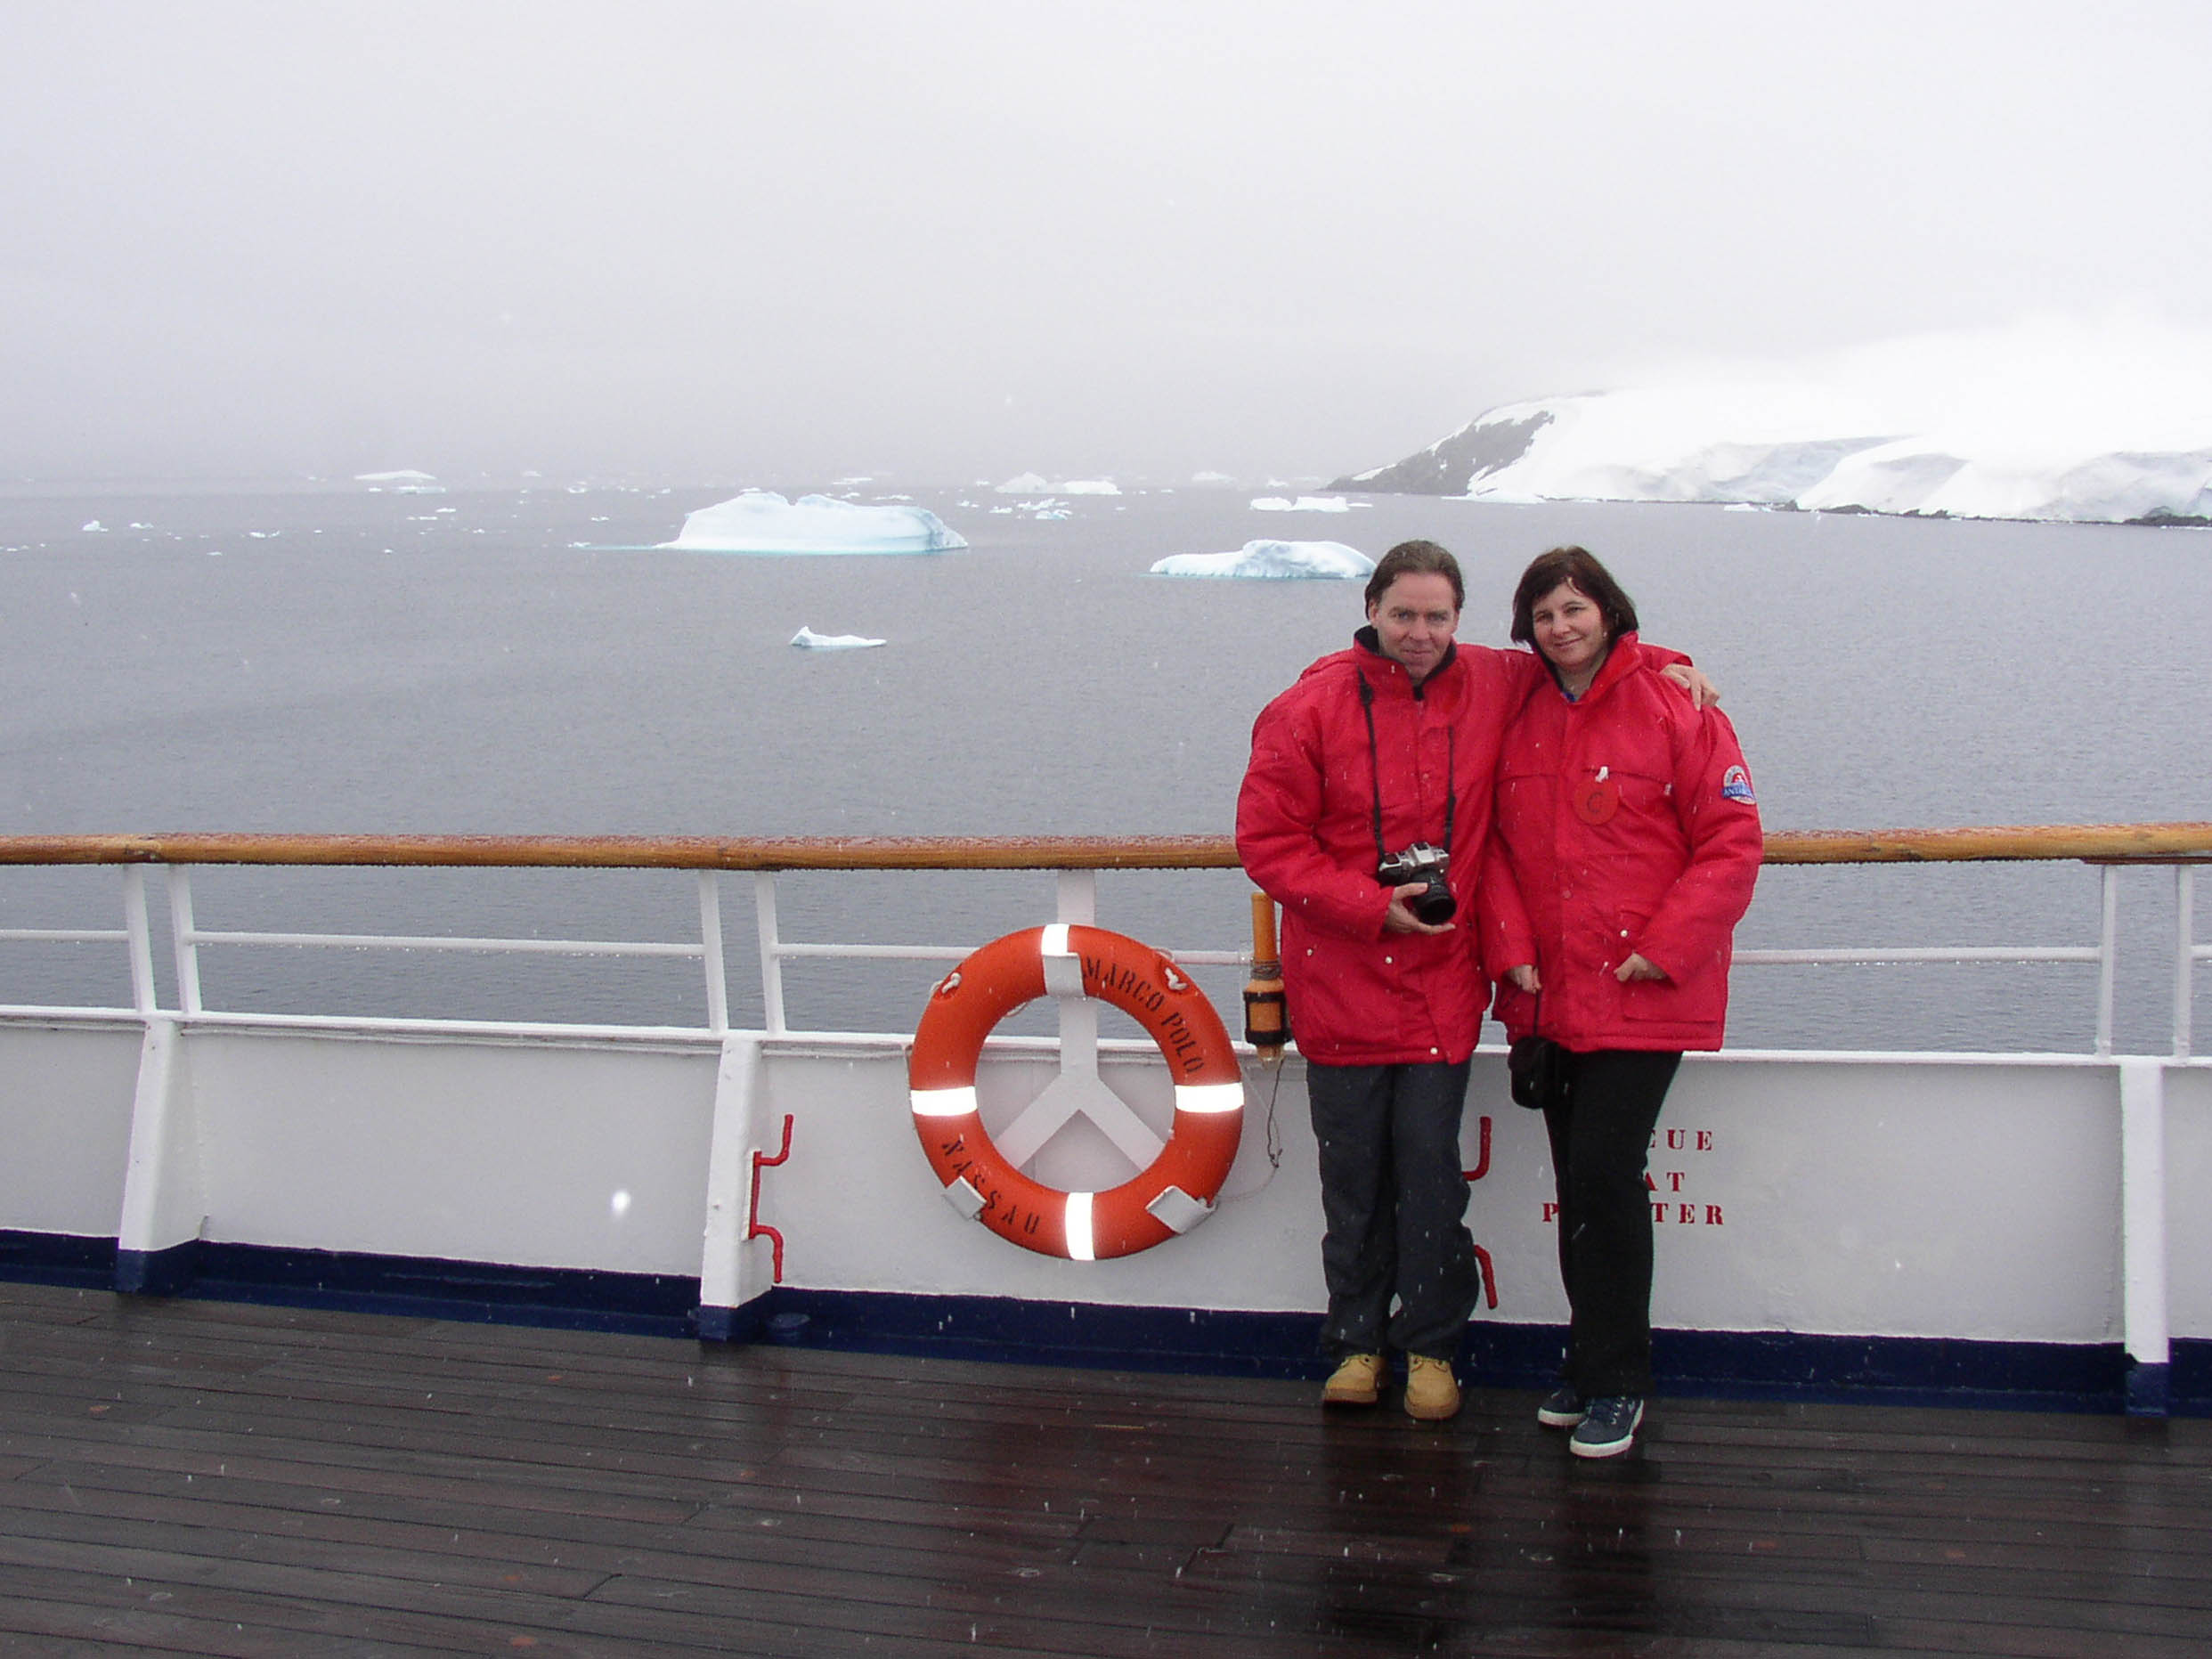 A couple wearing red anoraks on board a ship with icebergs nearby